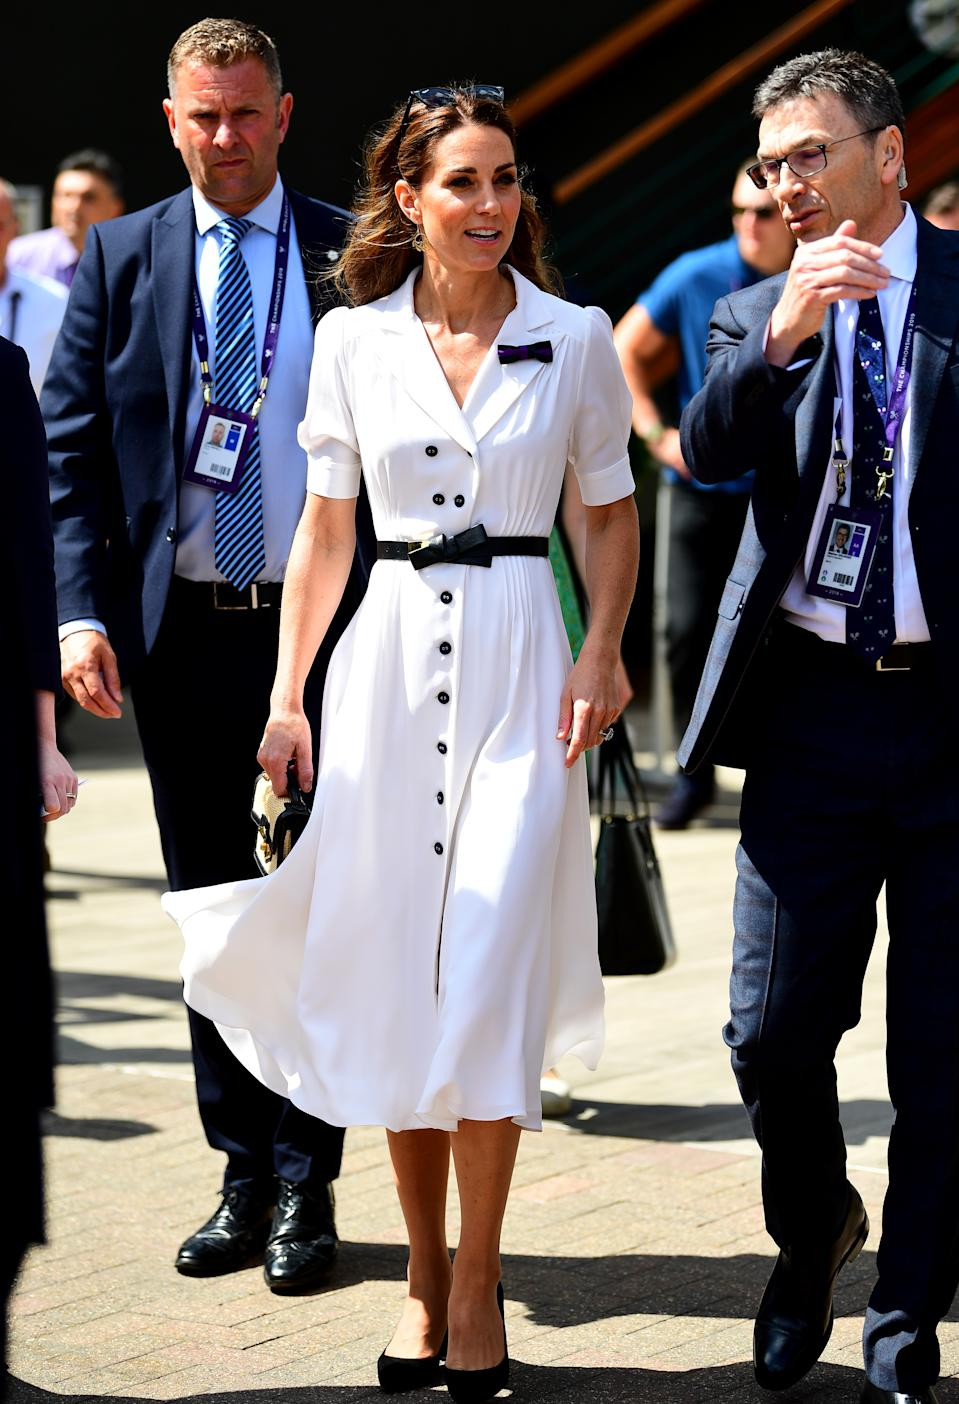 """Kate attended day two of Wimbledon, wearing a white<a href=""""https://www.suzannah.com/products/flippy-wiggle-dress"""" rel=""""nofollow noopener"""" target=""""_blank"""" data-ylk=""""slk:button-up dress by Suzannah"""" class=""""link rapid-noclick-resp""""> button-up dress by Suzannah</a>, with an Alexander McQueen bow detail belt and her Gianvito Rossi 'Piper' heels. A new raffia satchel by Alexander McQueen, her Catherine Zoraida earrings and a pair of Ray-Ban Wayfarers completed her courtside look. [Photo: PA]"""